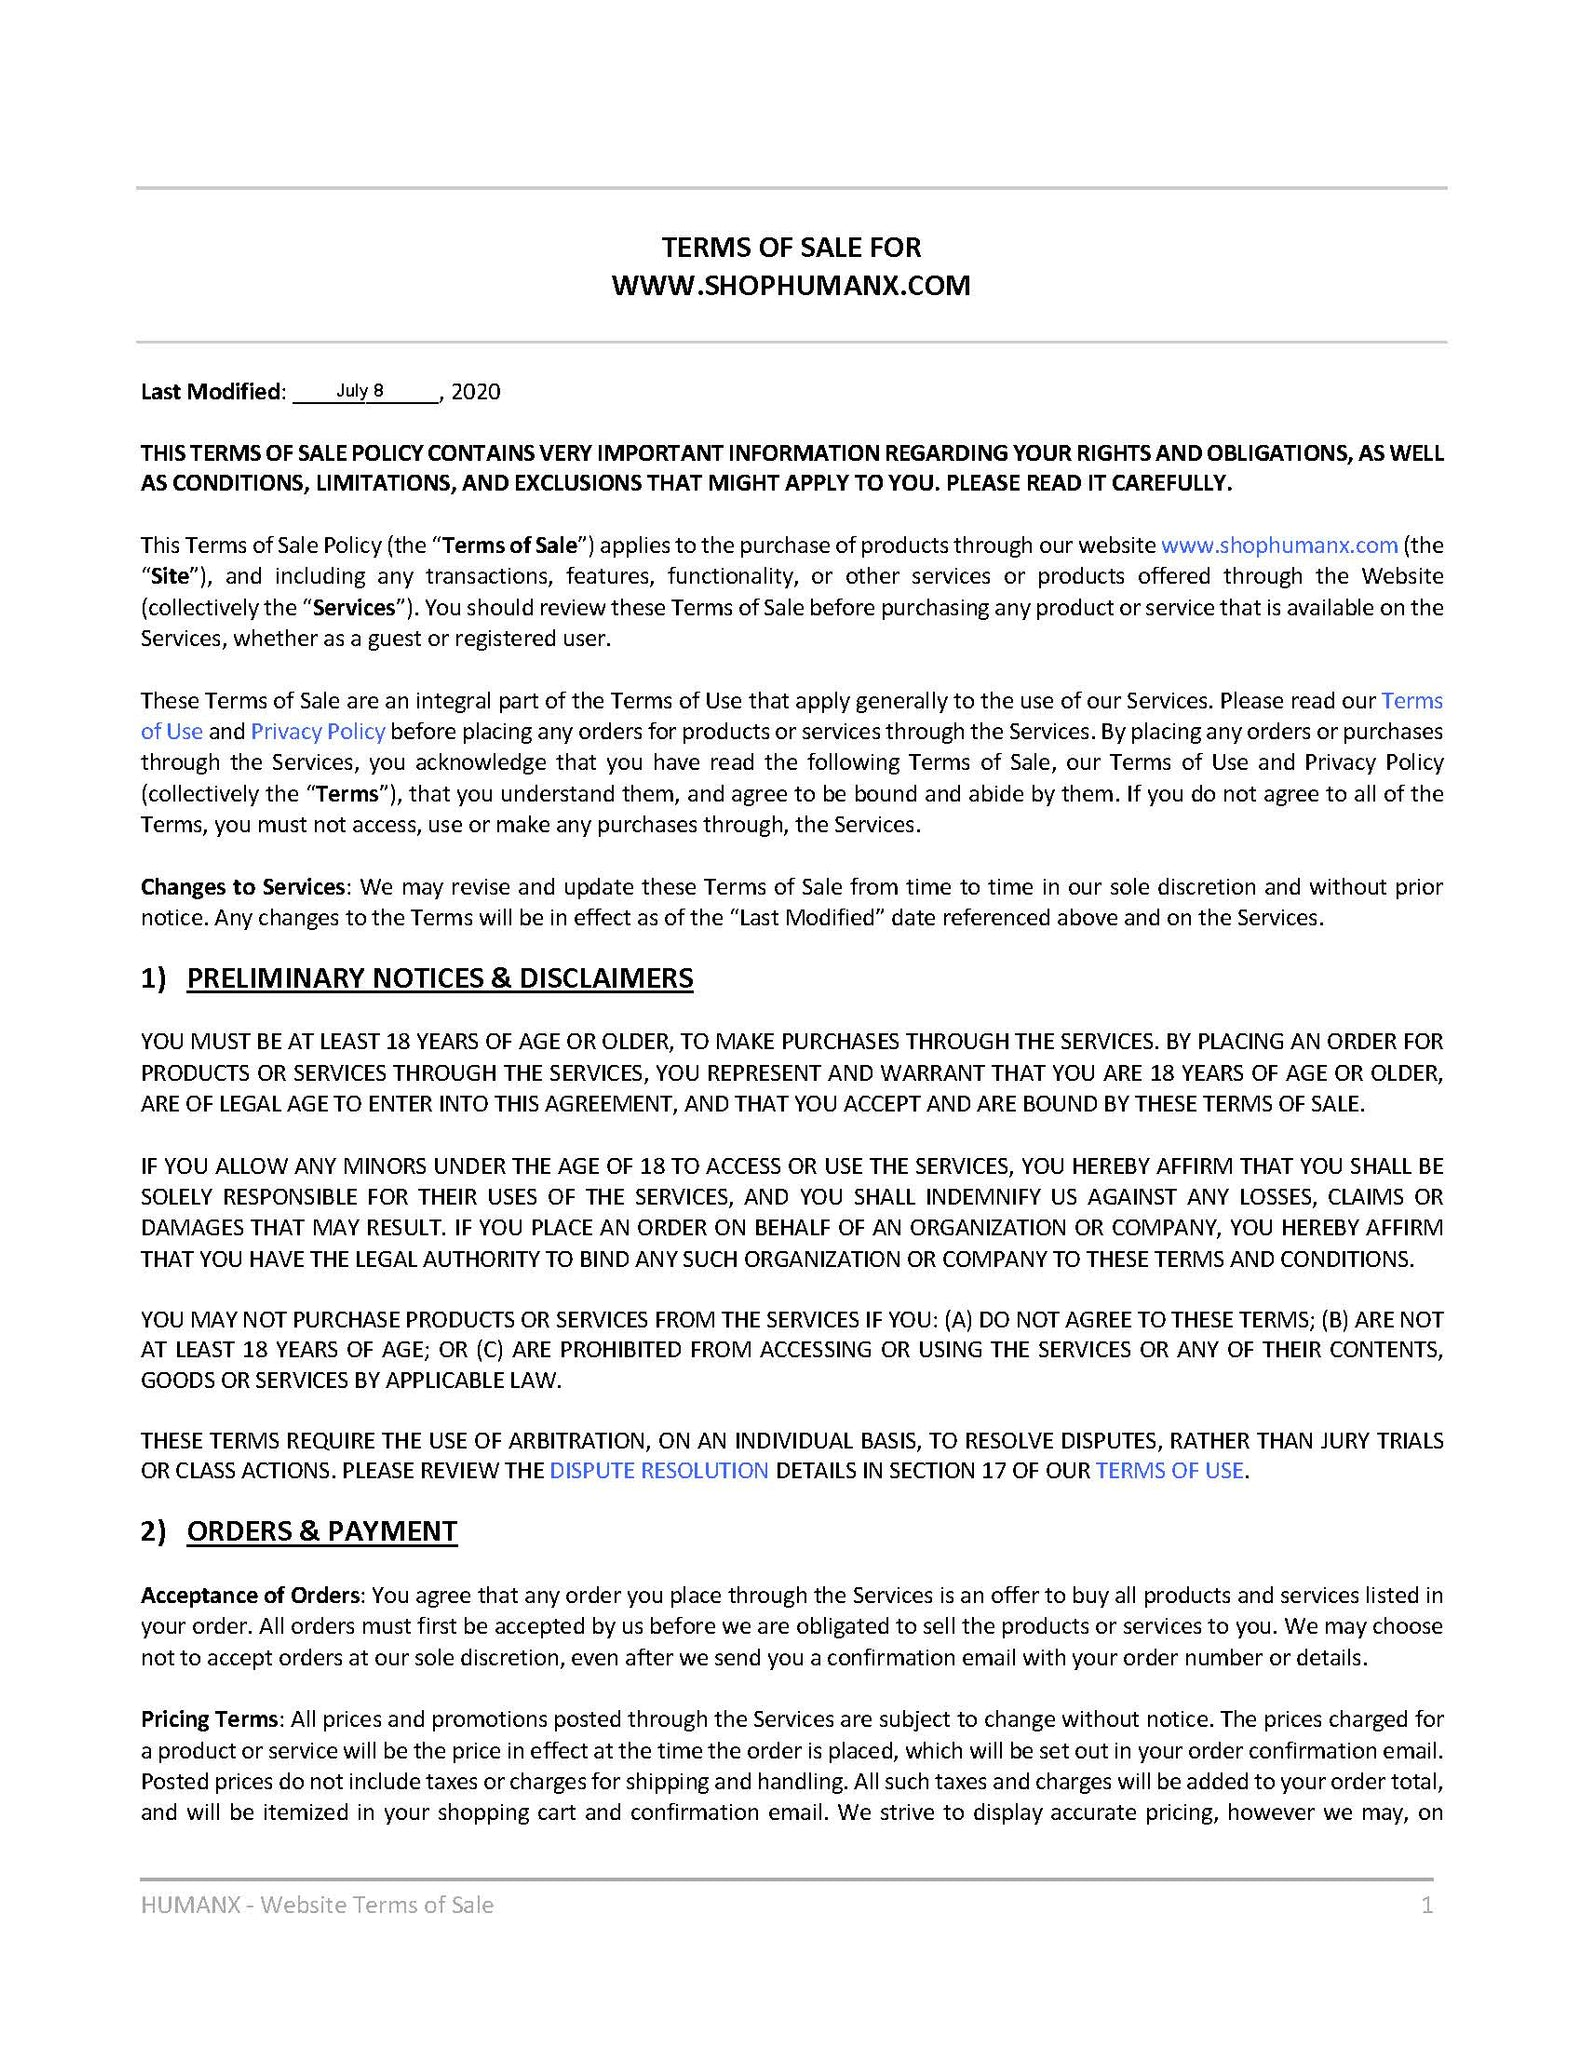 Terms of Sale - Page 1